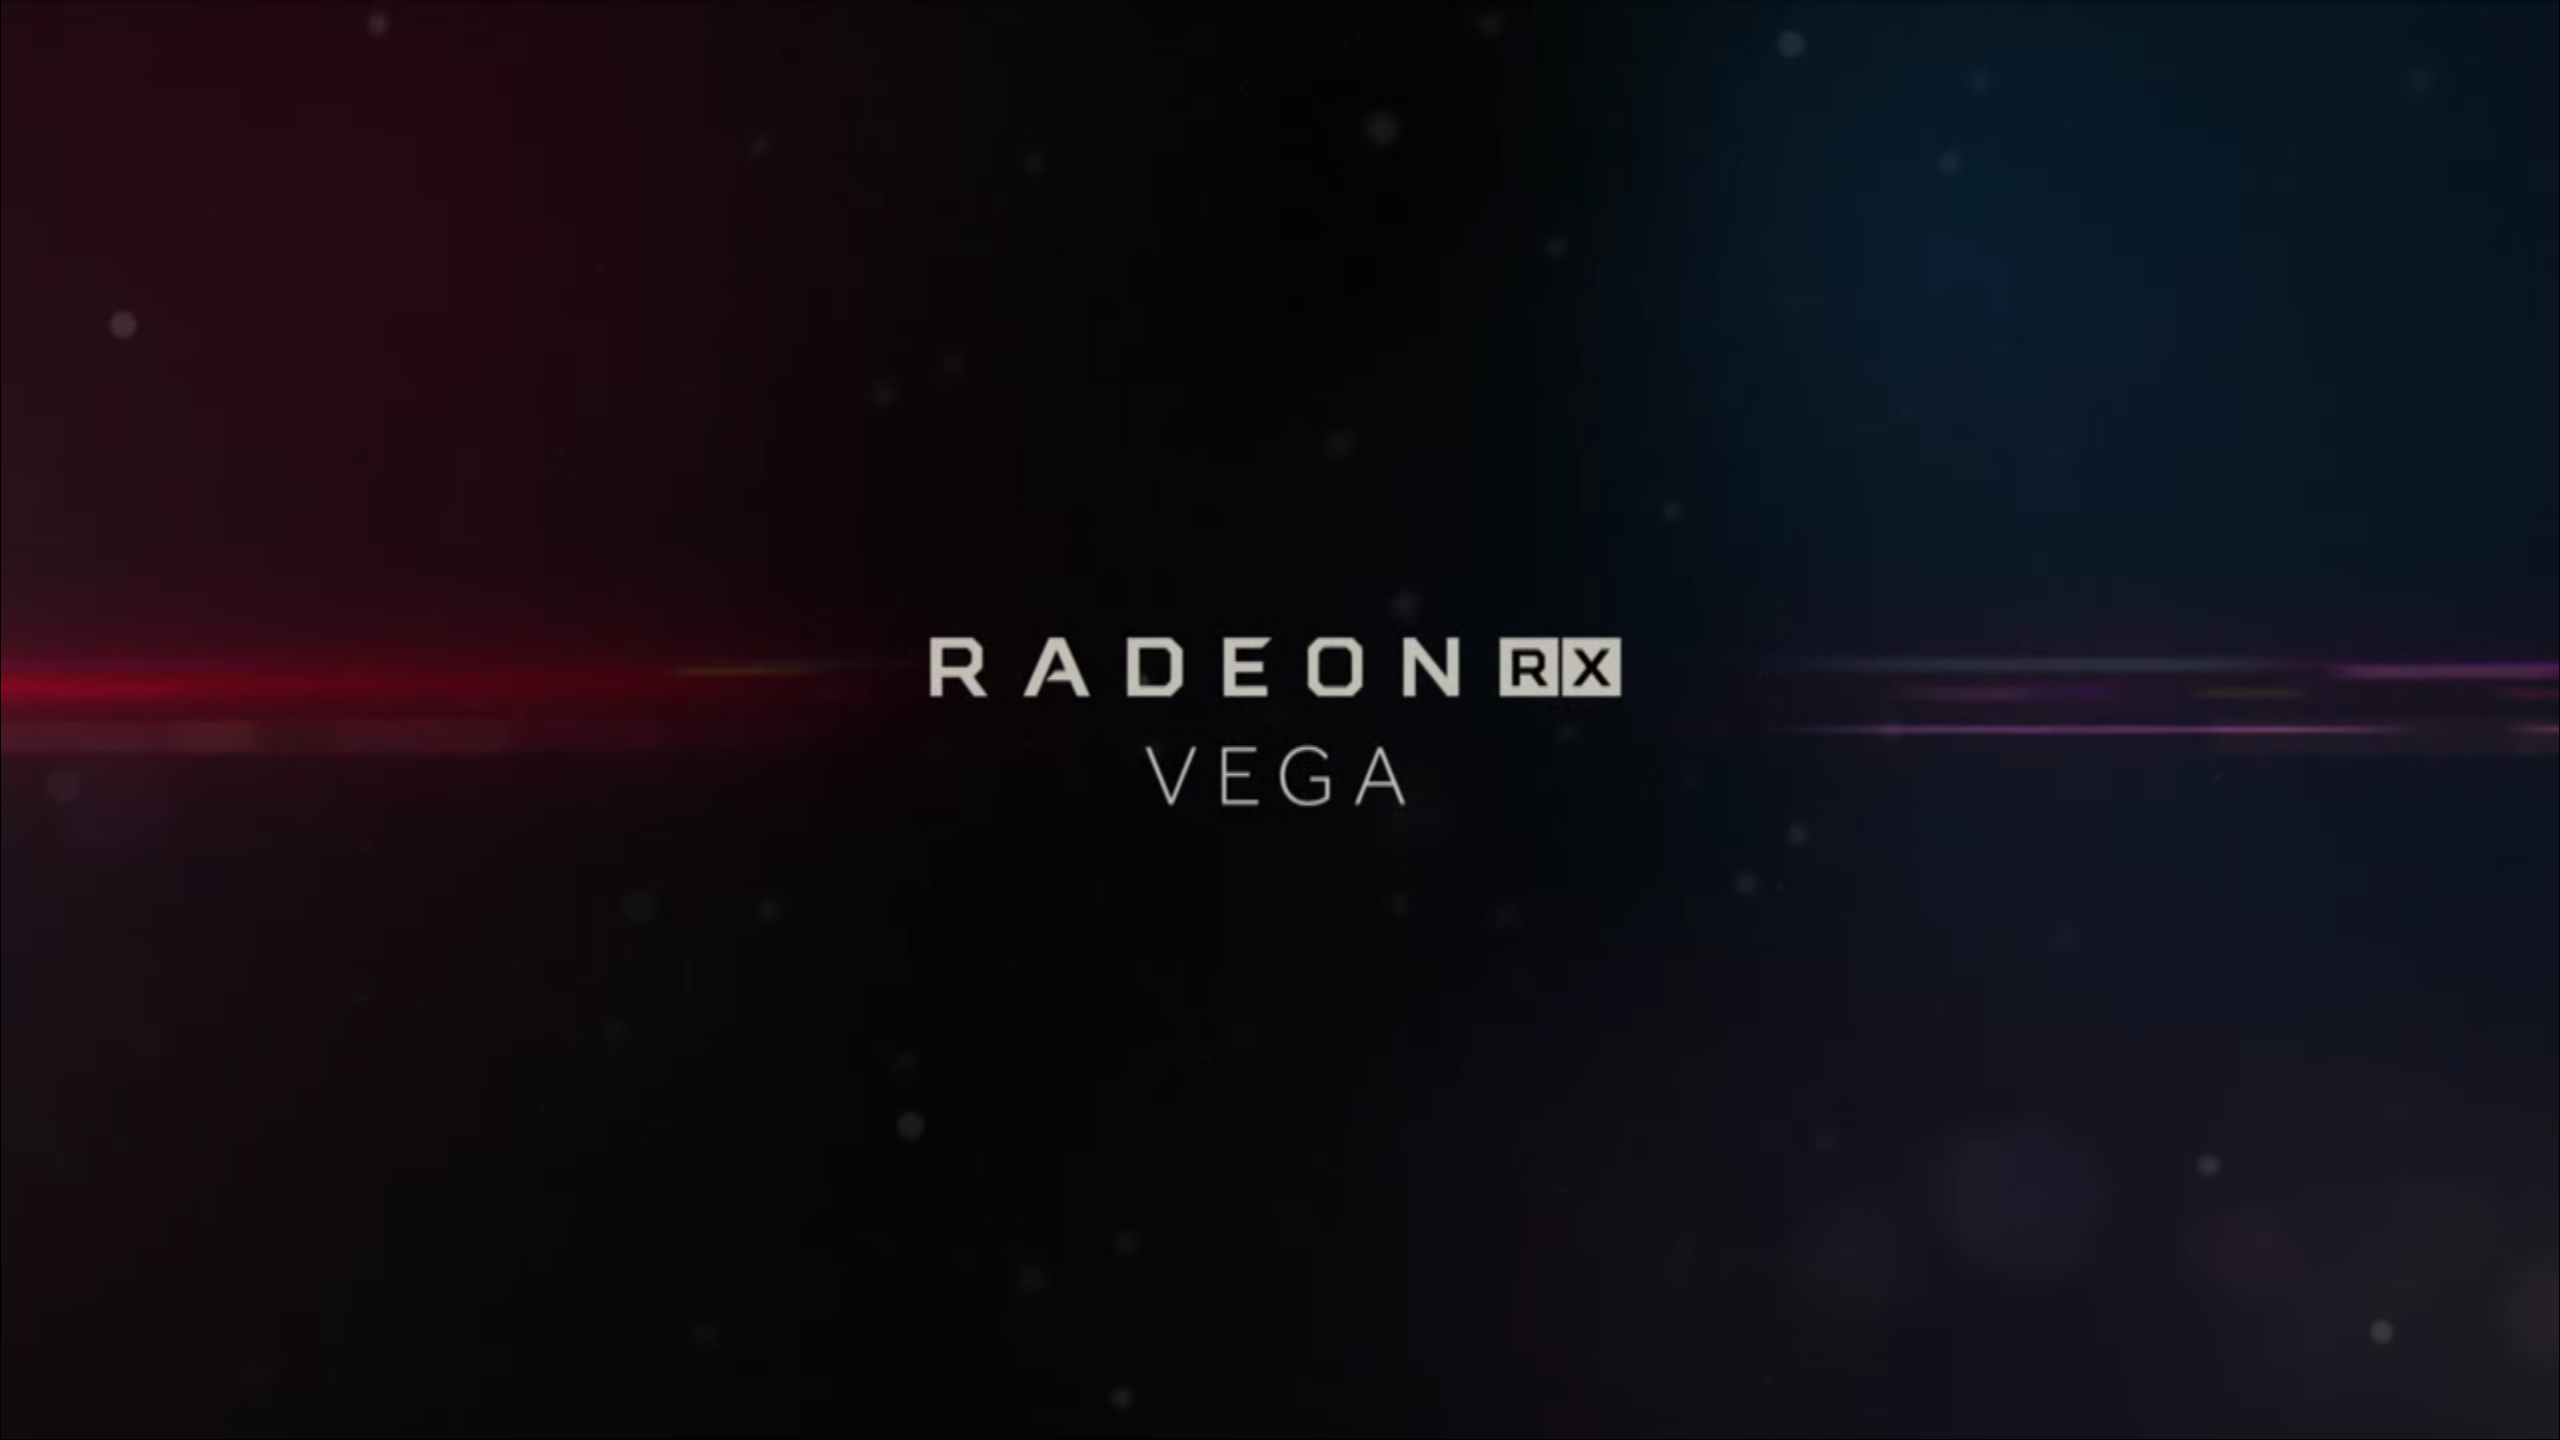 Amd Radeon Rx Vega Gpu Architecture And Brand New Features Detailed